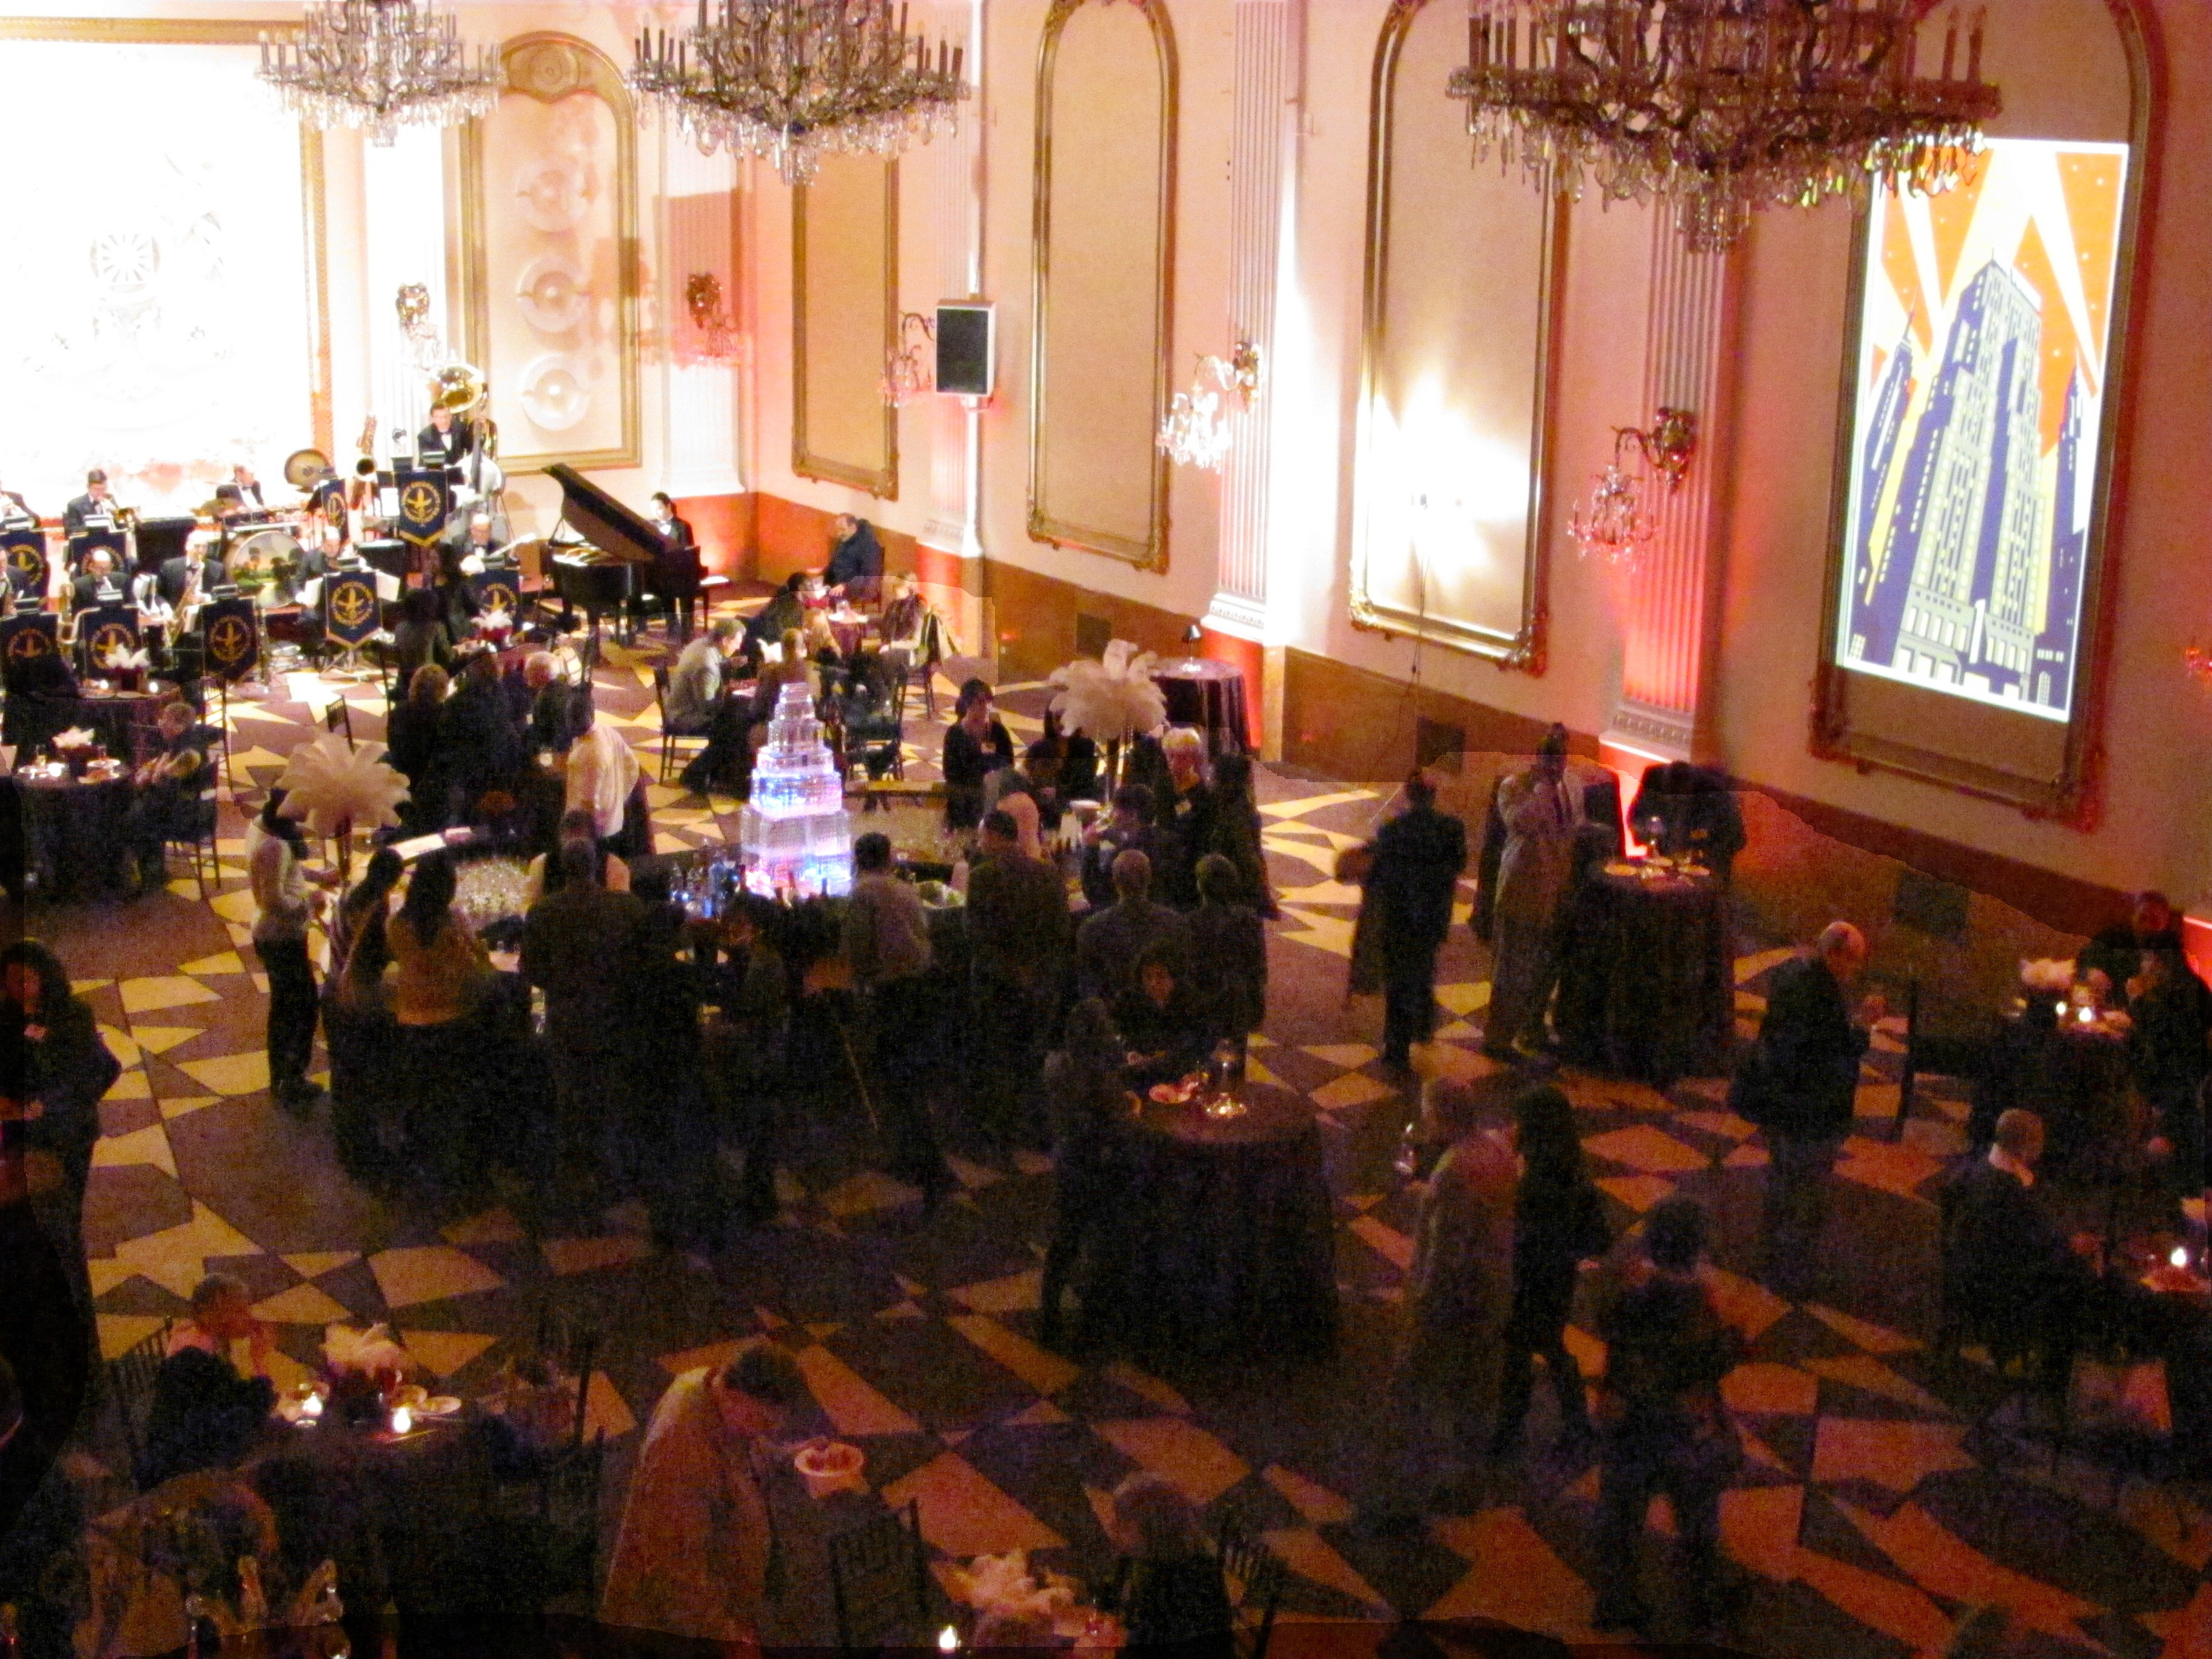 ... 1930s-style bash that featured the big band music of Vince Giordano and ...